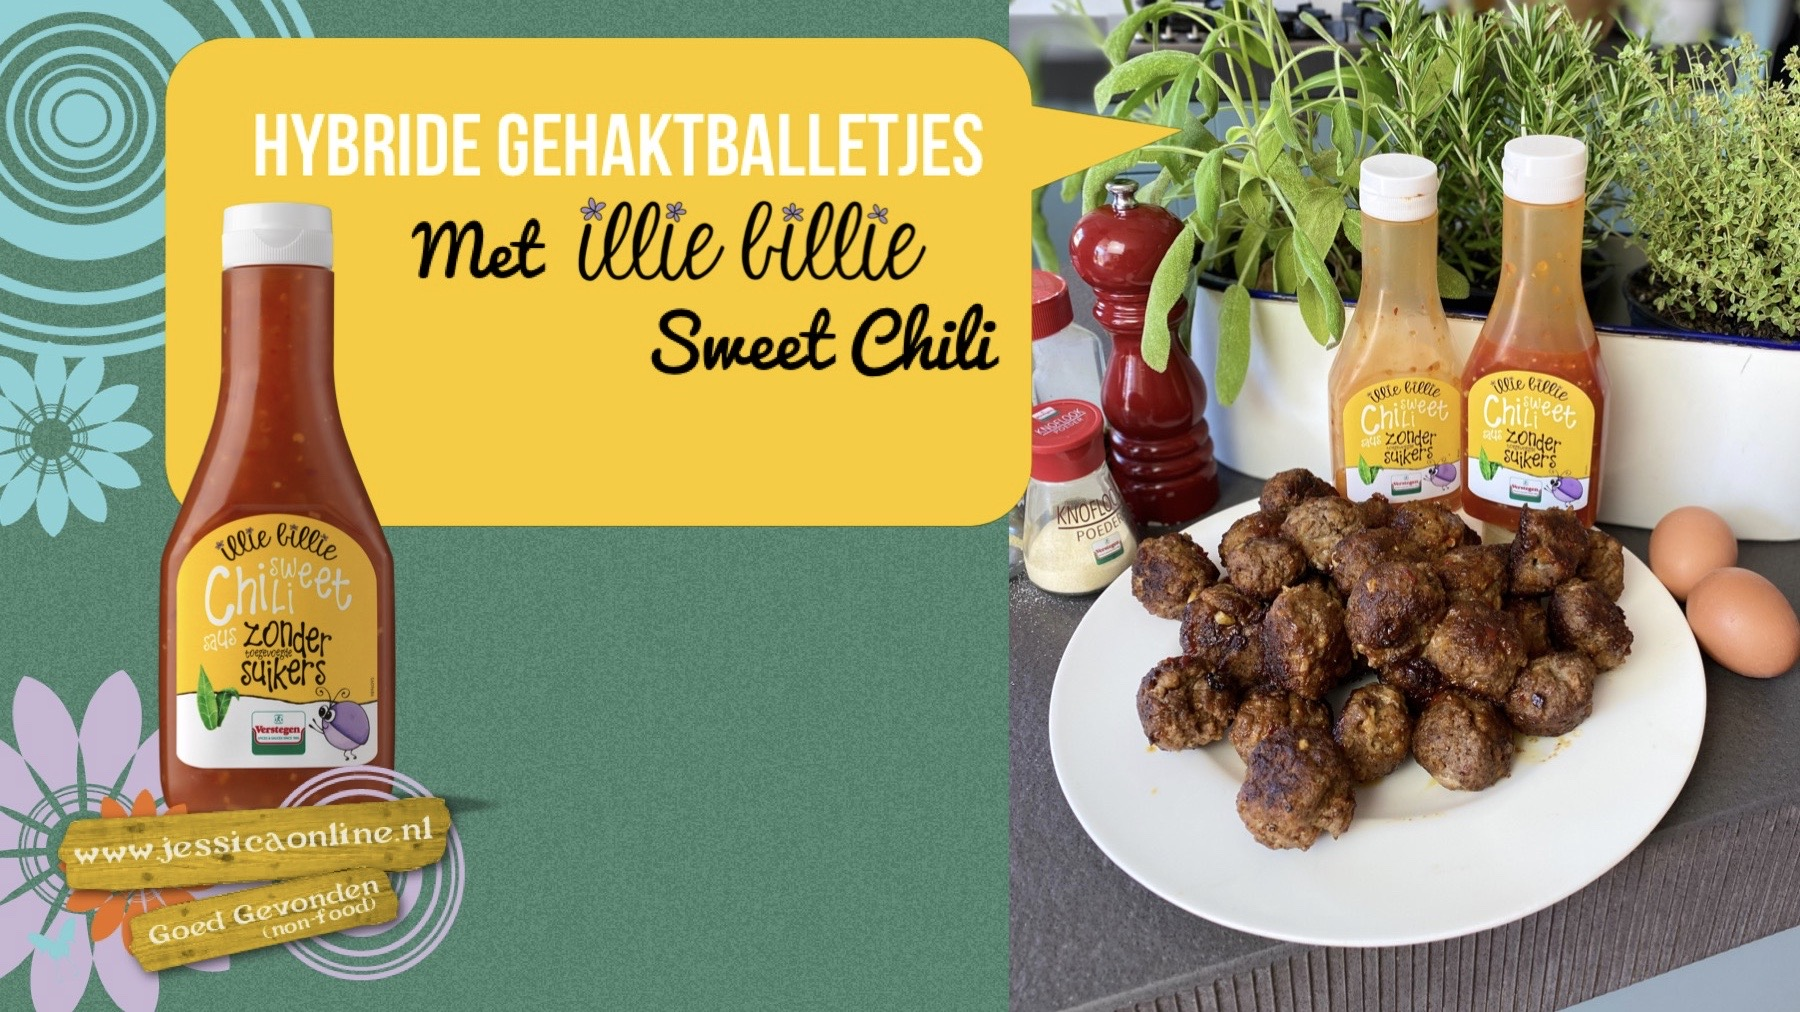 Hybride gehaktballetjes met illie billie Sweet Chili